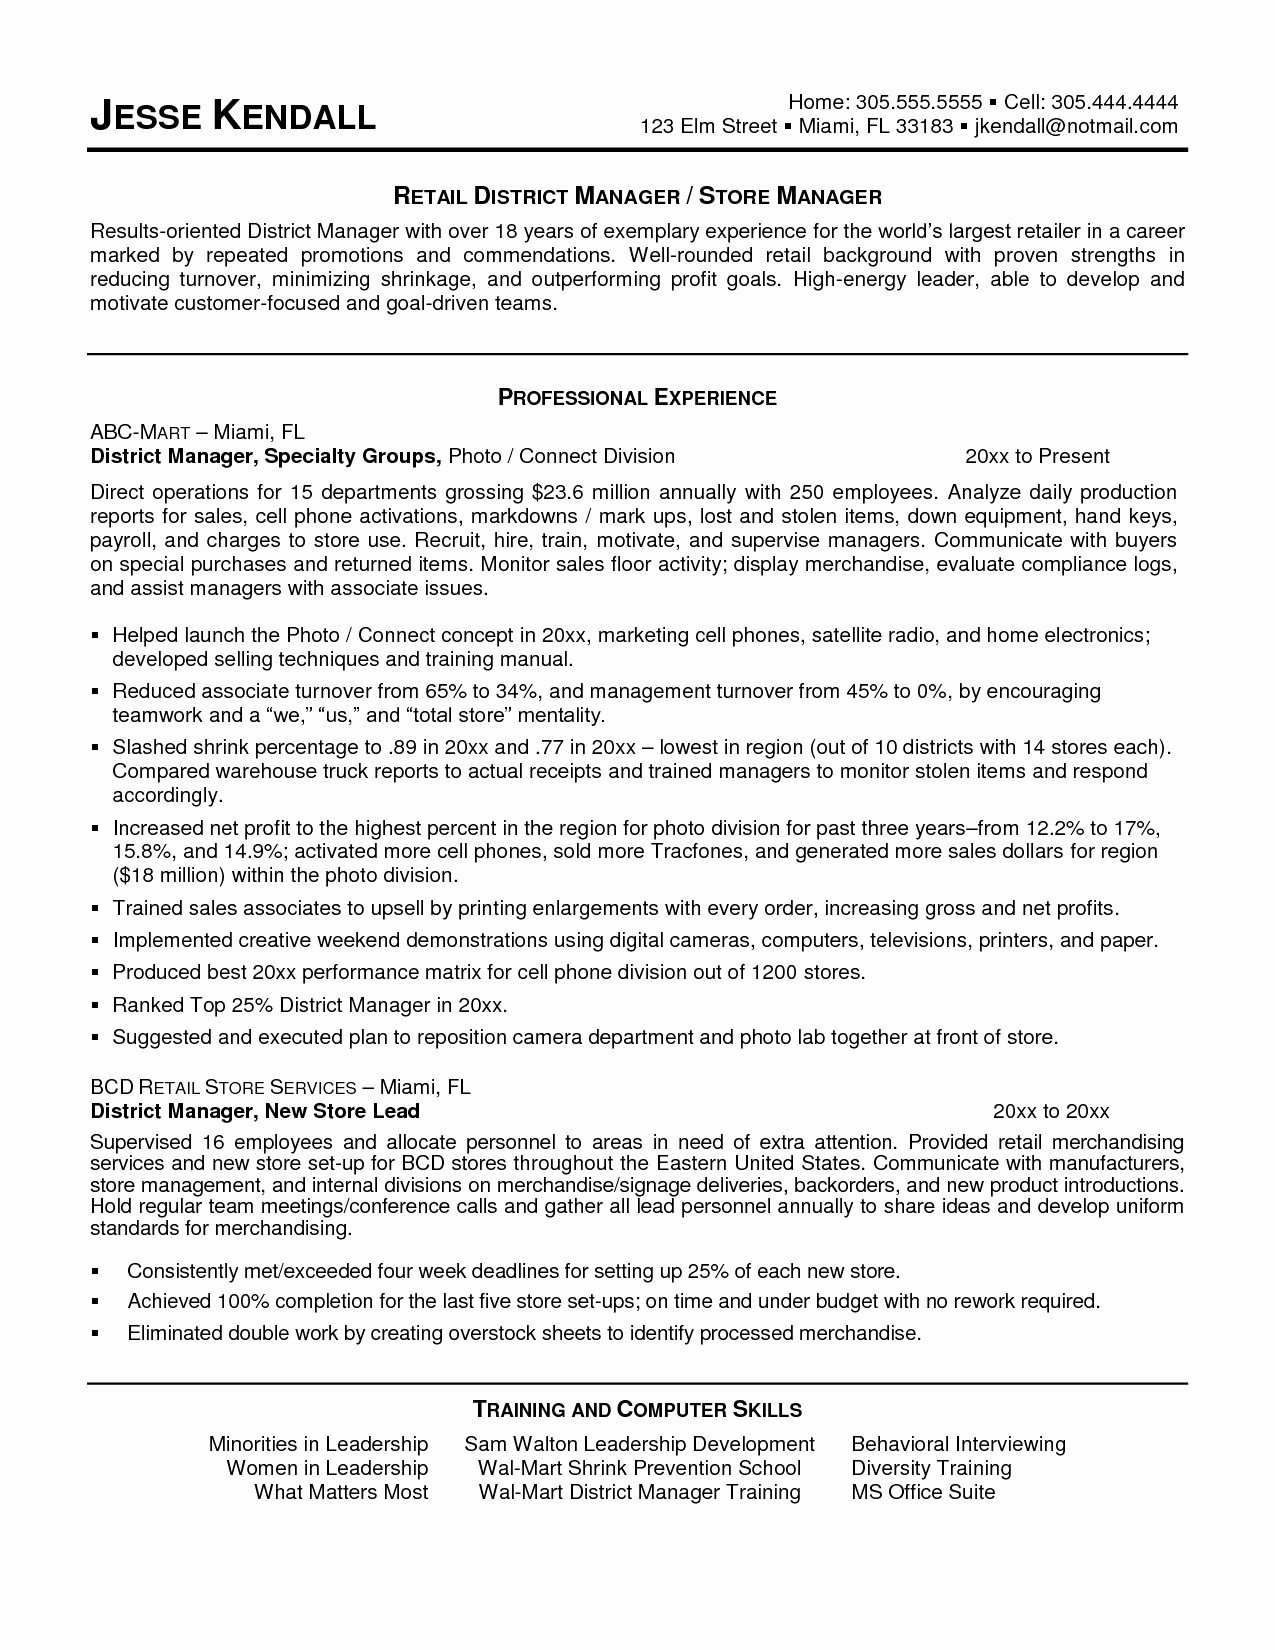 Christmas Letter Template Word Free - My Resume Template Basic Resume Template for Every E Basic Resume